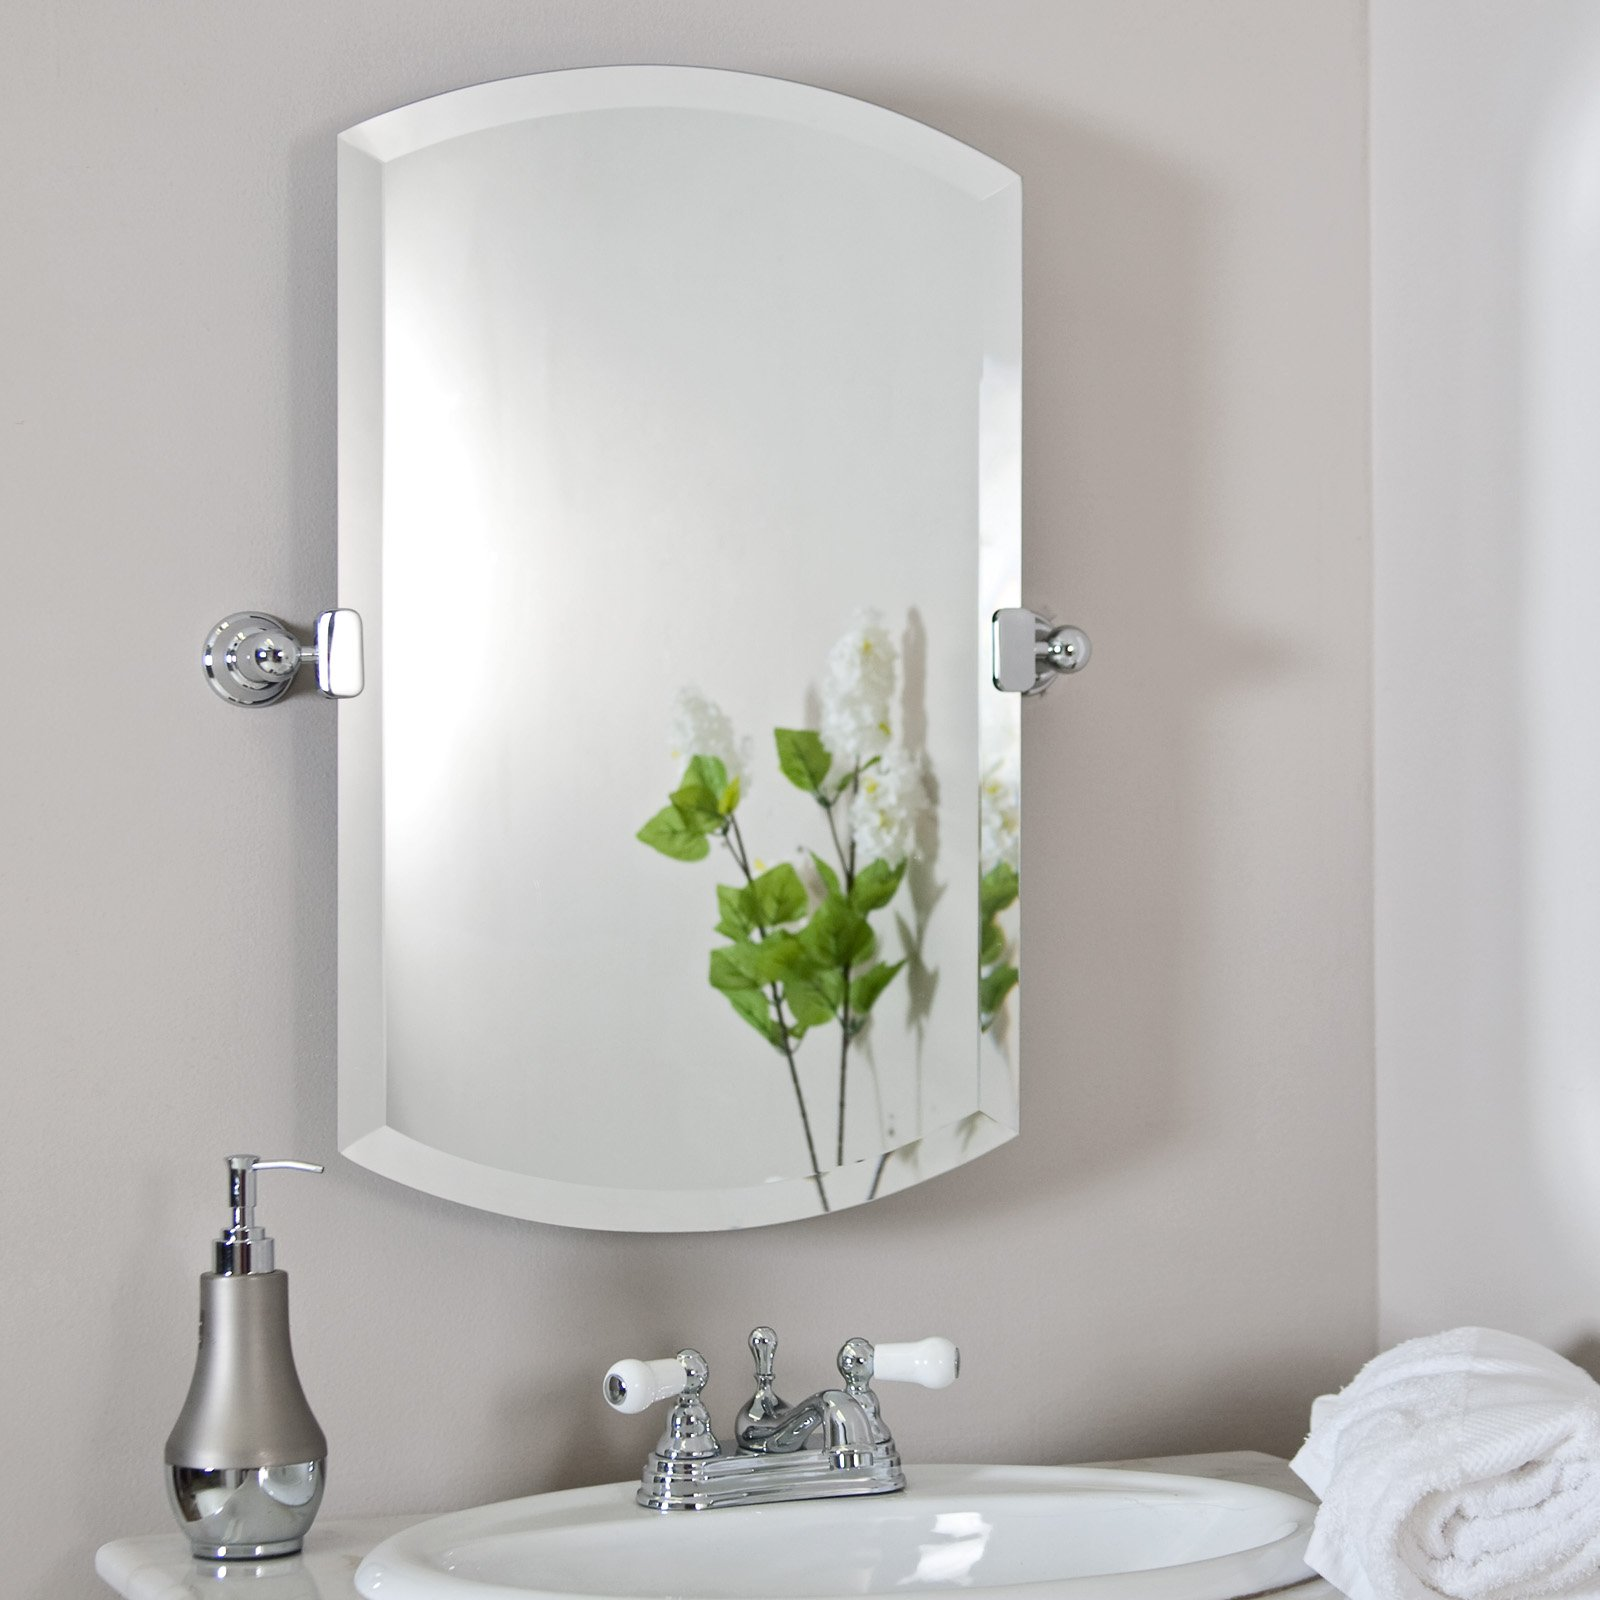 Decorative Brushed Nickel Mirror Brushed Nickel Bathroom Mirror As Sweet Wall Decoration